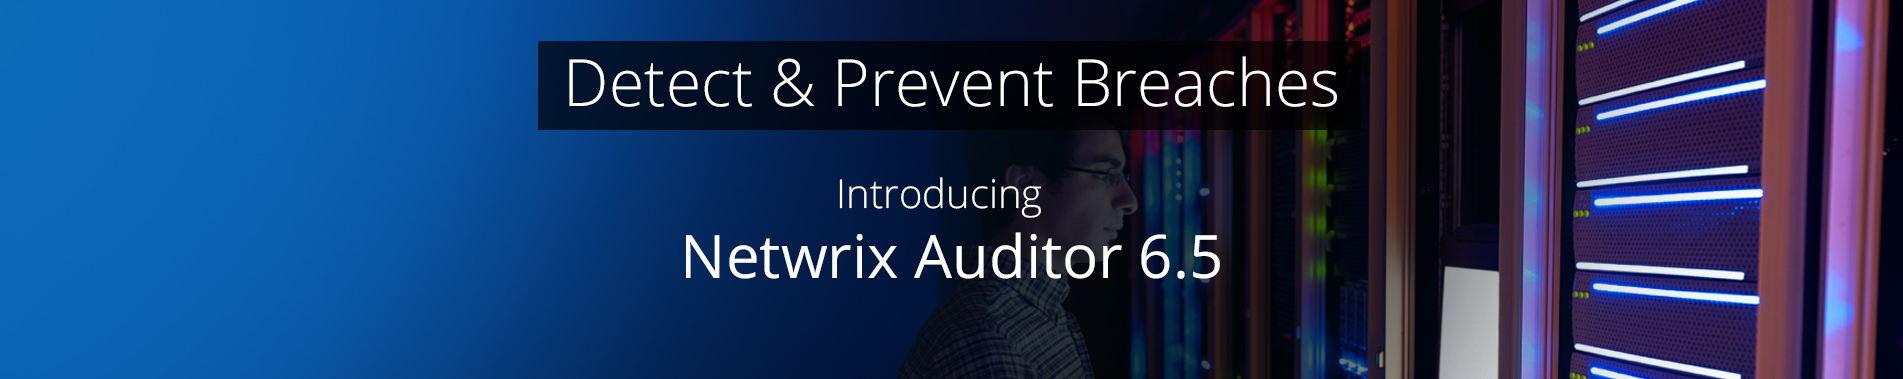 Detect & Prevent Breaches, New Release Netwrix Auditor 6.5